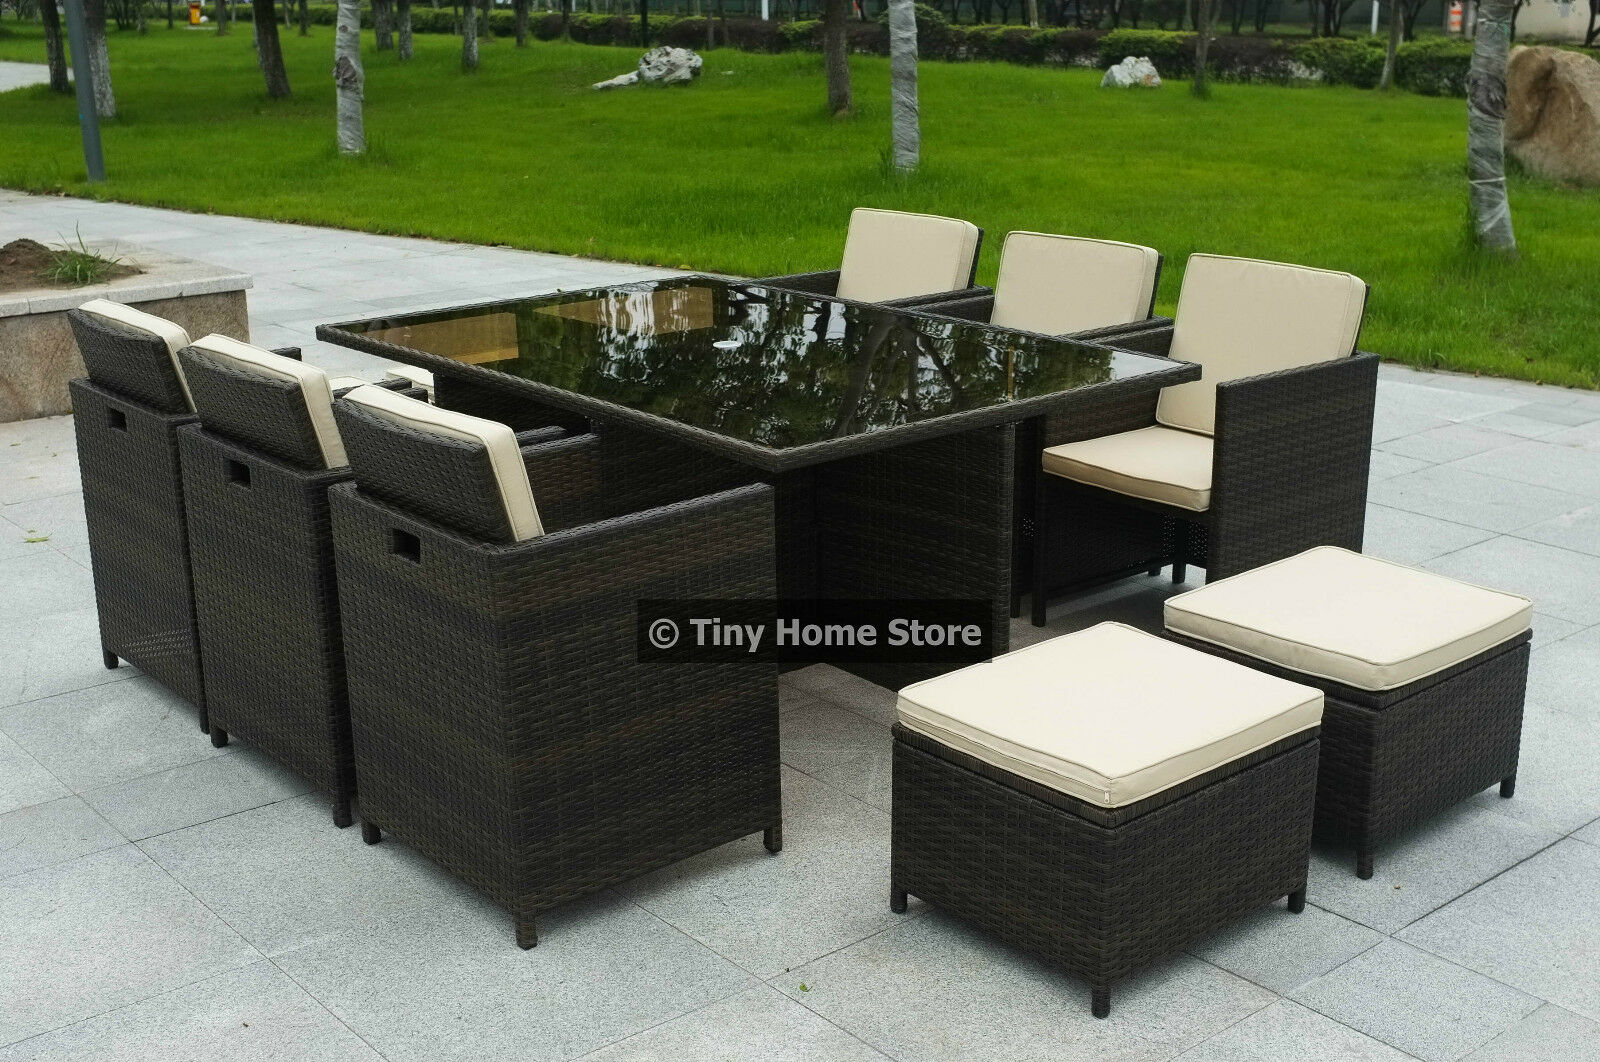 Luxury cube rattan dining set garden furniture patio for Luxury garden furniture